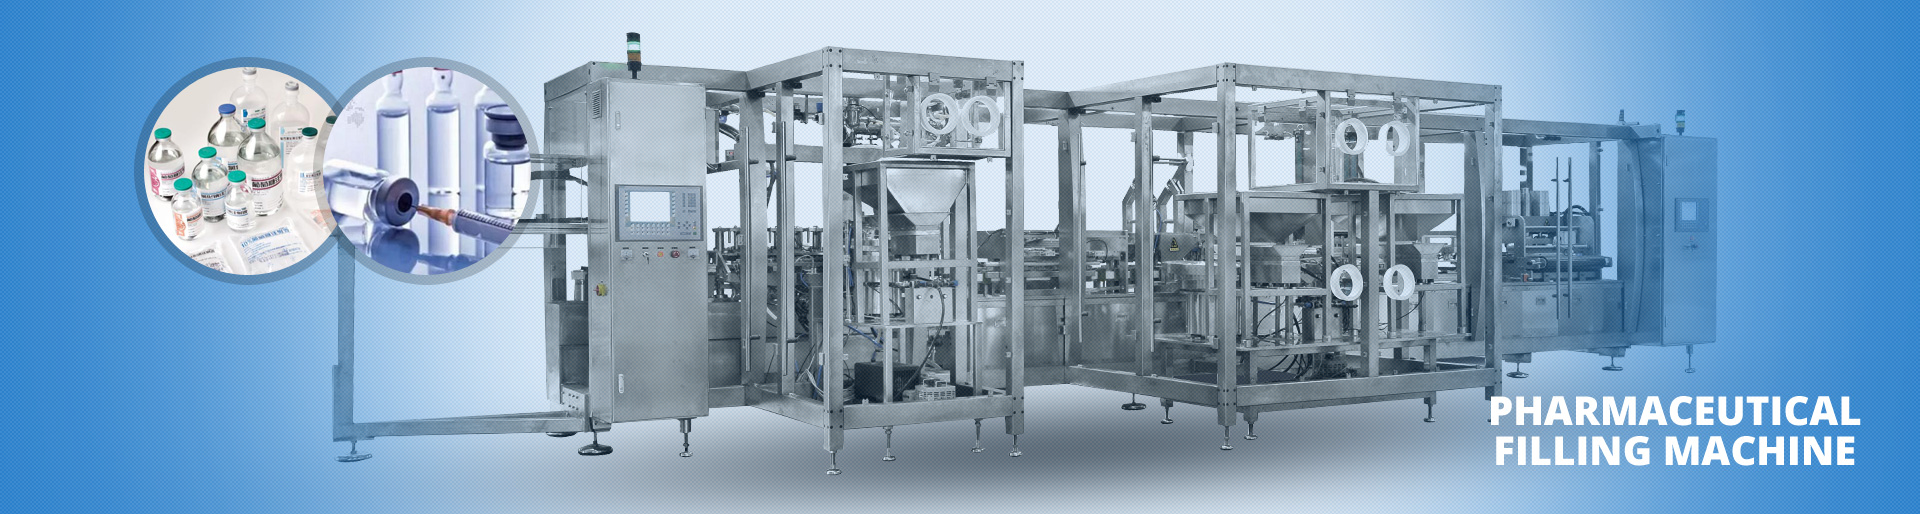 pharmaceutical filling machinery